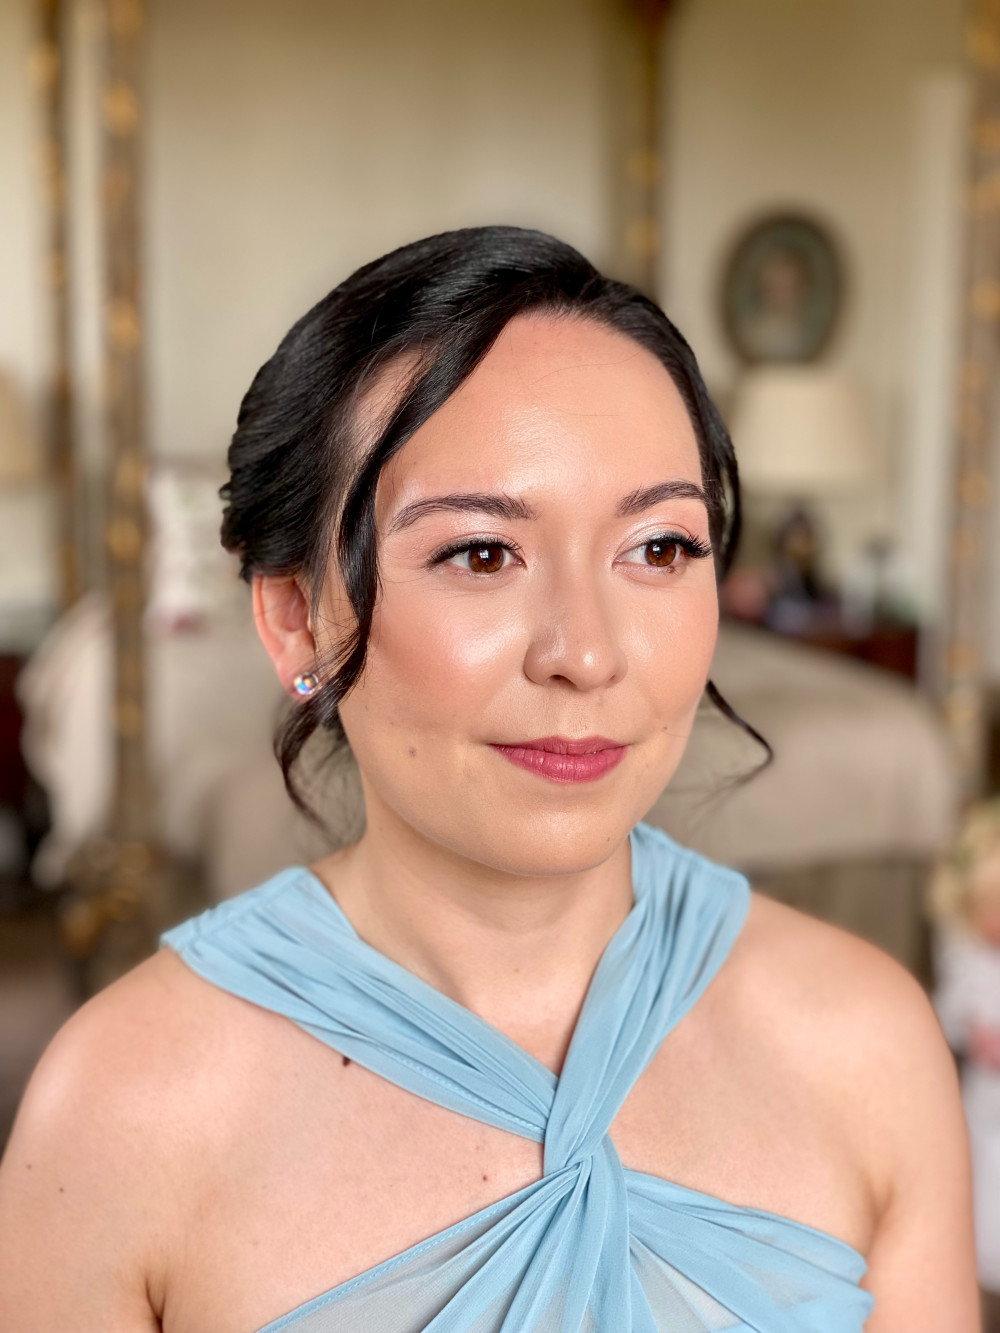 Dewy, radiant skin and bespoke individual lashes for a bridesmaid. - Make Me Bridal Artist: Stephanie Graham Vegan & Cruelty-Free Makeup Artist. Photography by: Stephanie Graham. #naturalmakeup #glow #lashes #bridesmaid #natural #bridesmaidmakeup #dewyskin #individuallashes #glowingskin